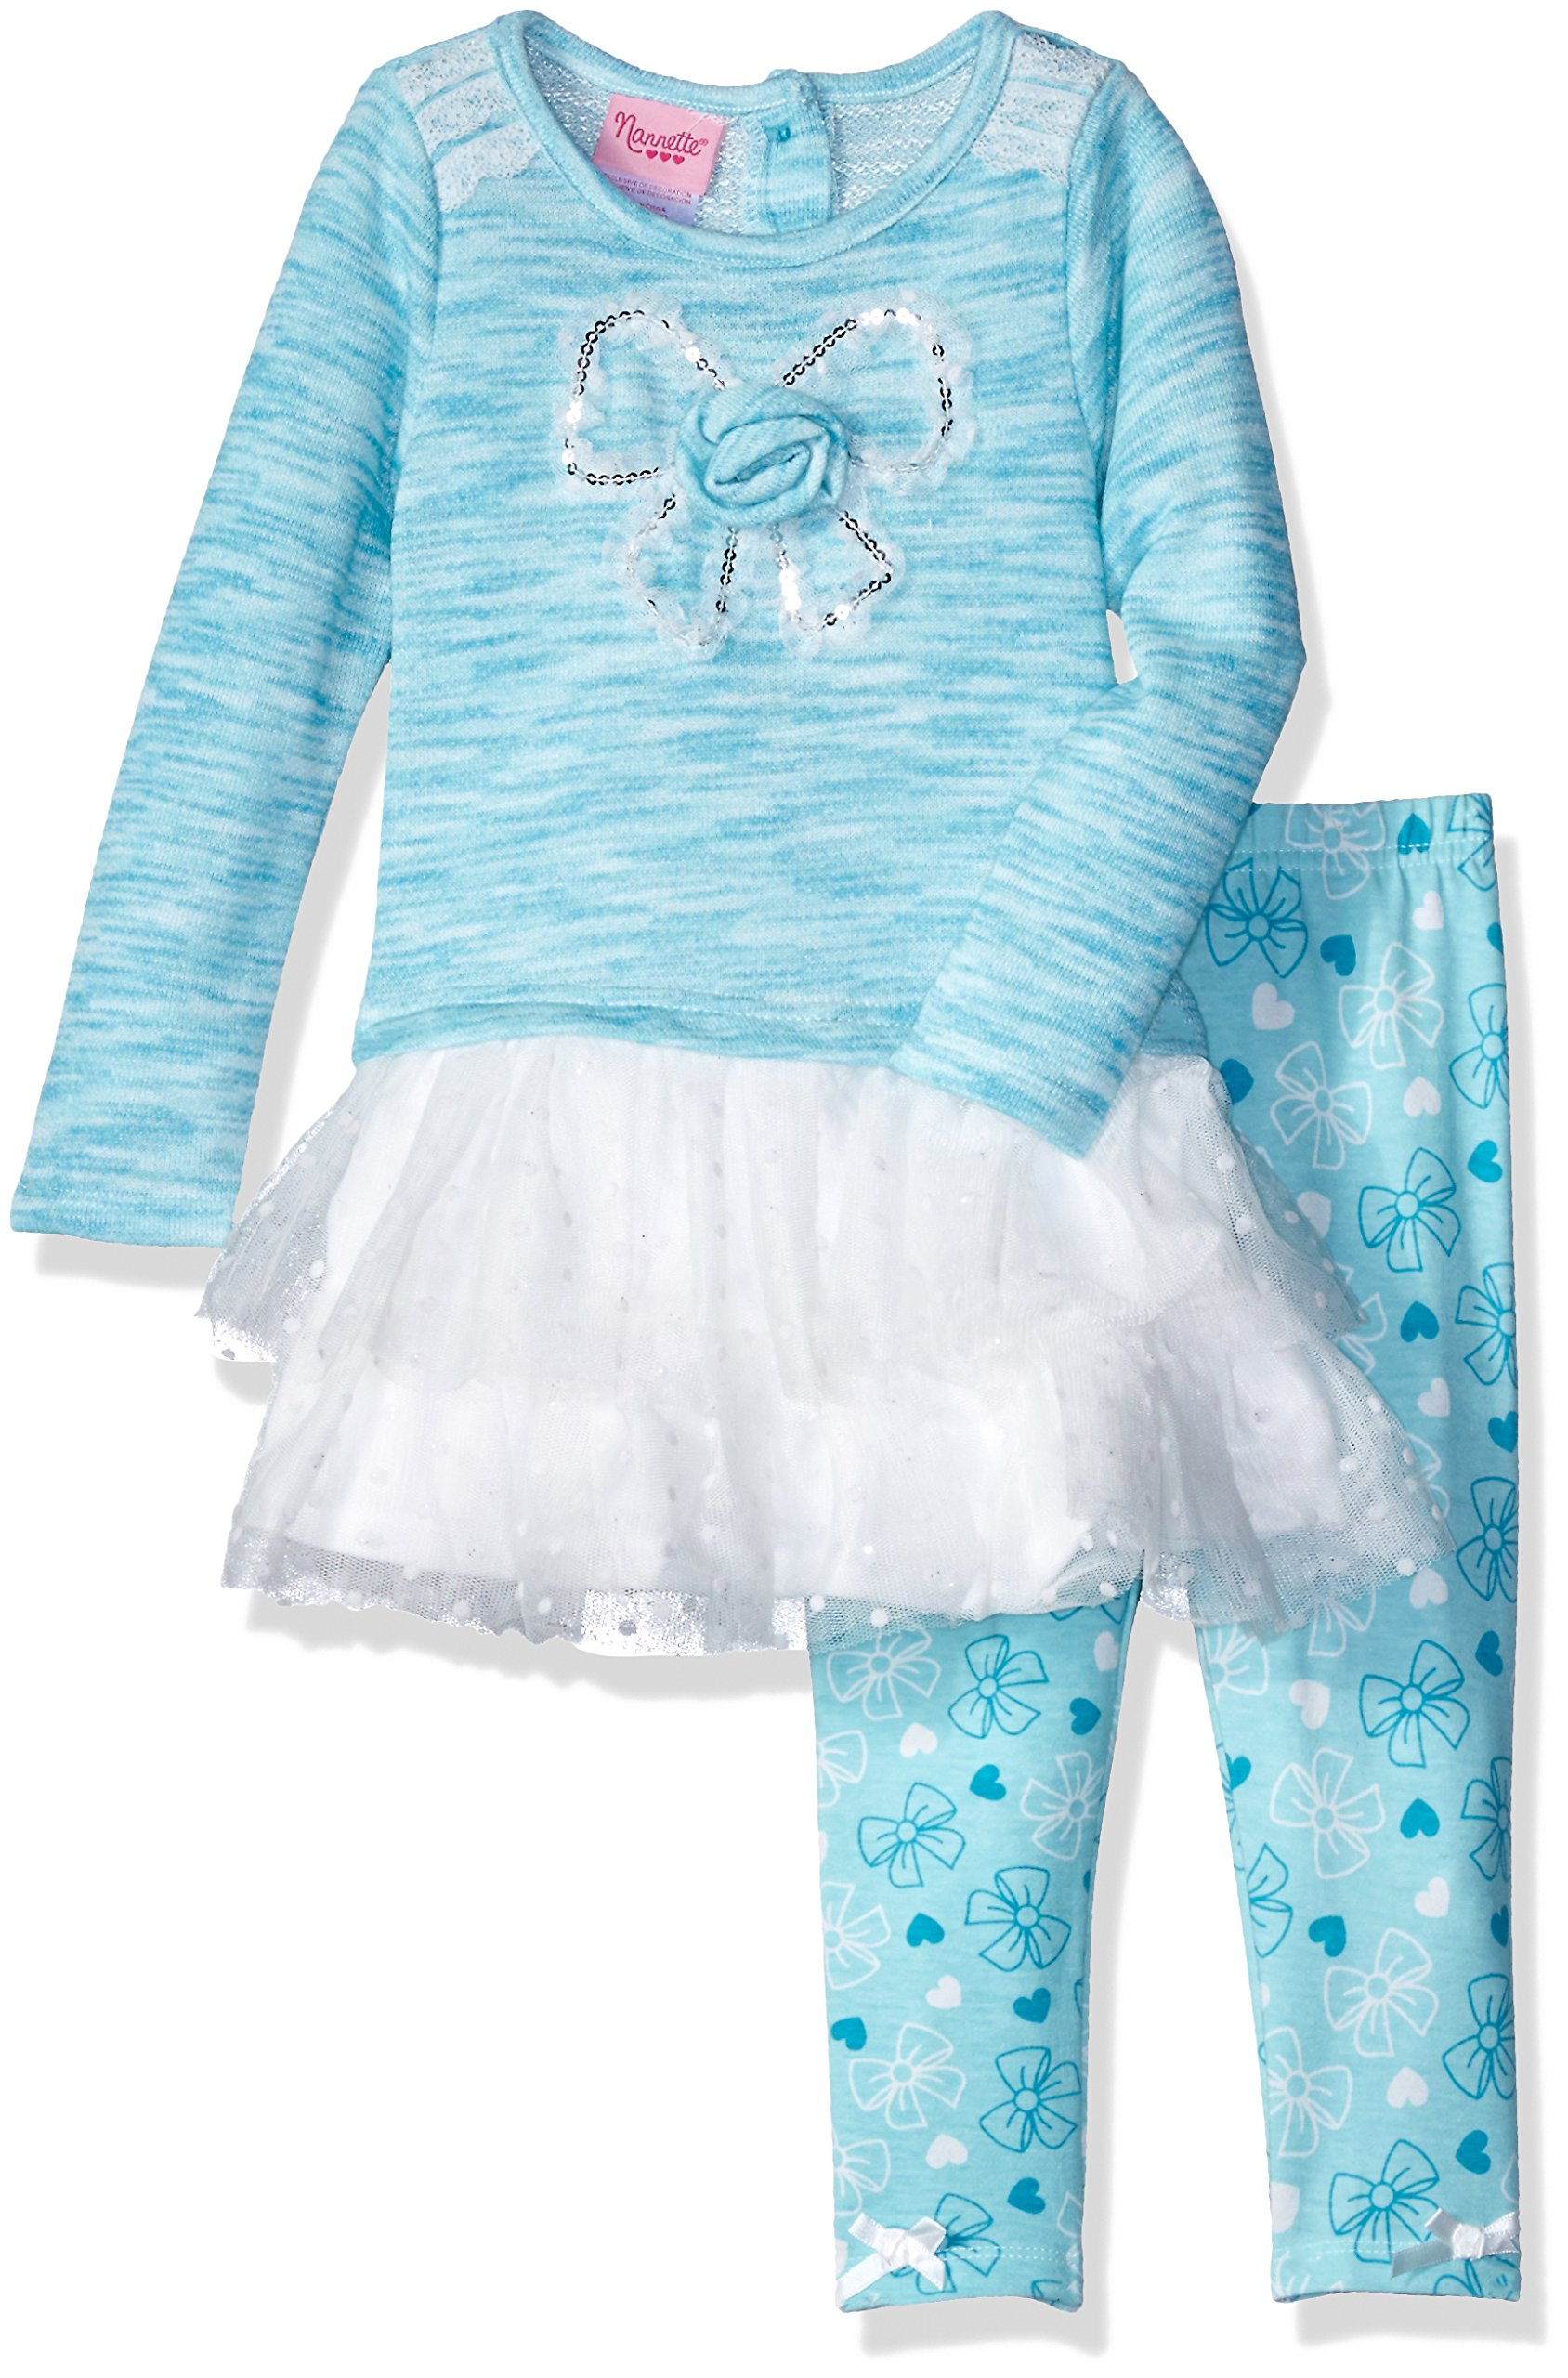 Nannette Little Girls' 2 Piece Fashion Legging Set with Spaced Dyed Top and Lace Trim, Blue, 4